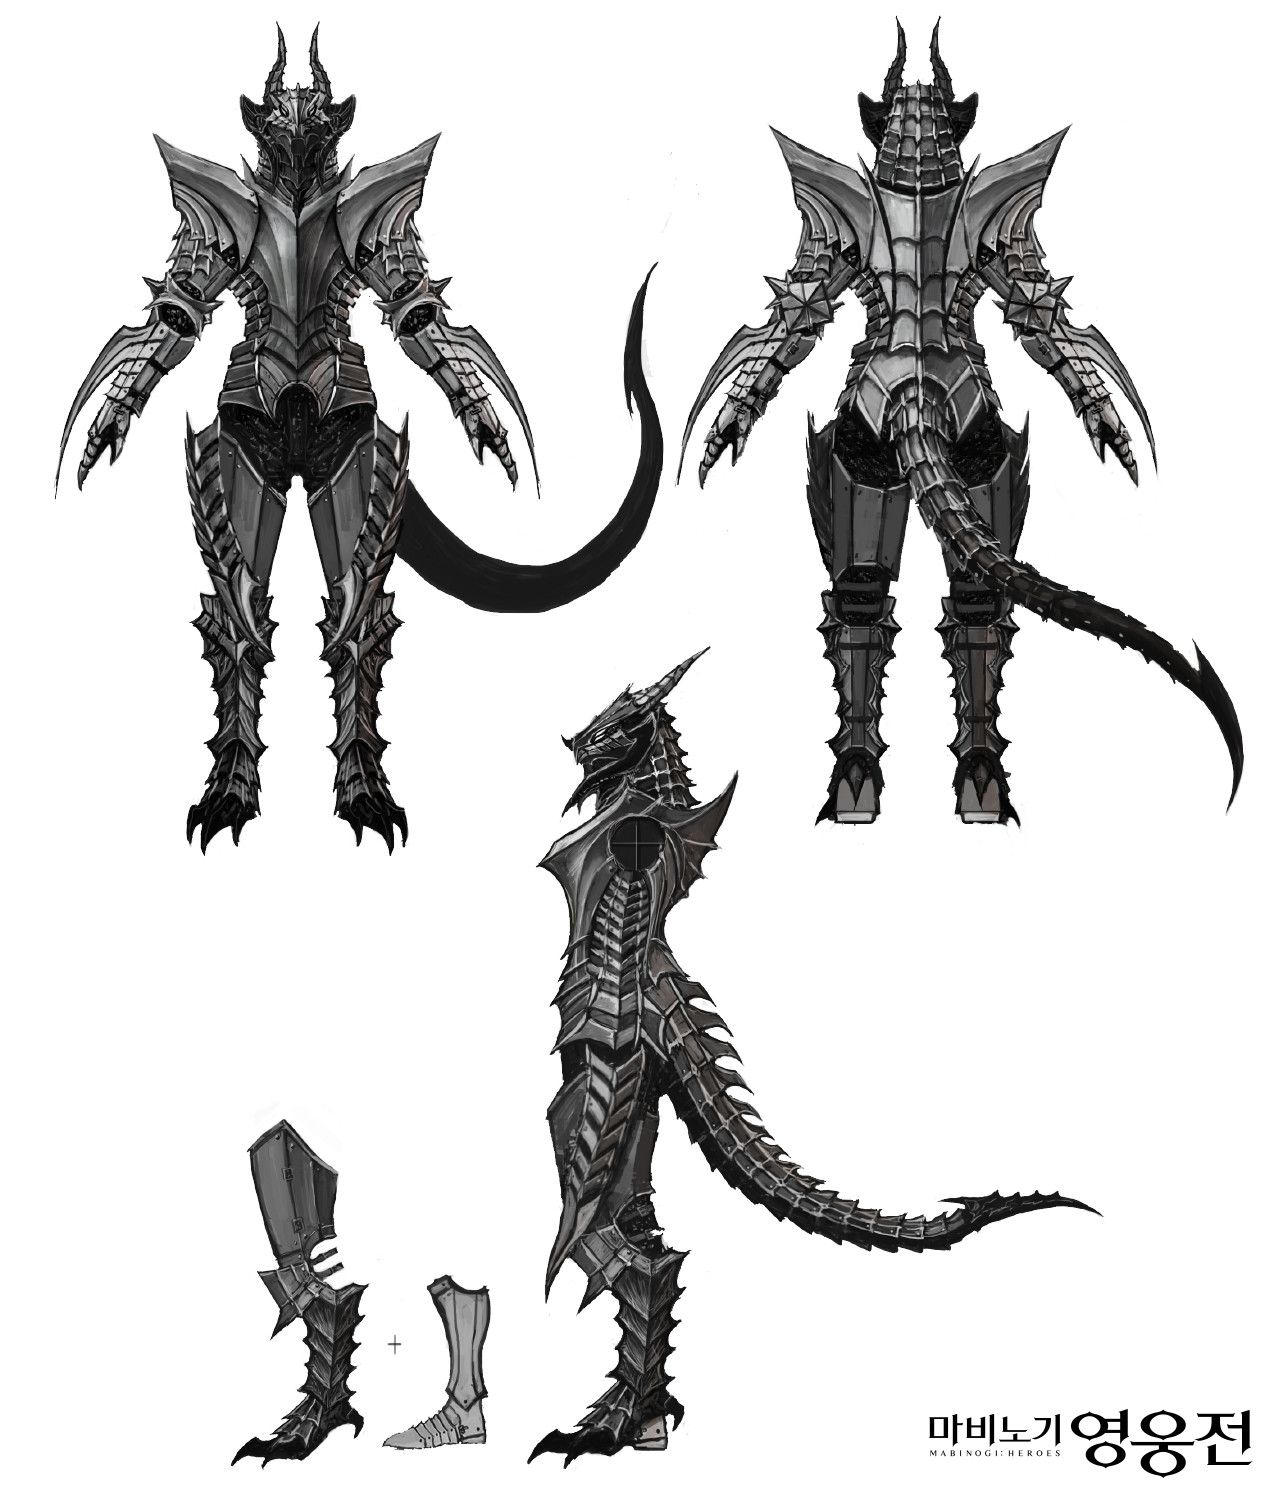 Artstation Dragon Armor Celder Art Dragon Armor Fantasy Armor Armor Concept Dragon armors are legendary armor sets that are crafted from dragon fragments of the various dragon types. artstation dragon armor celder art